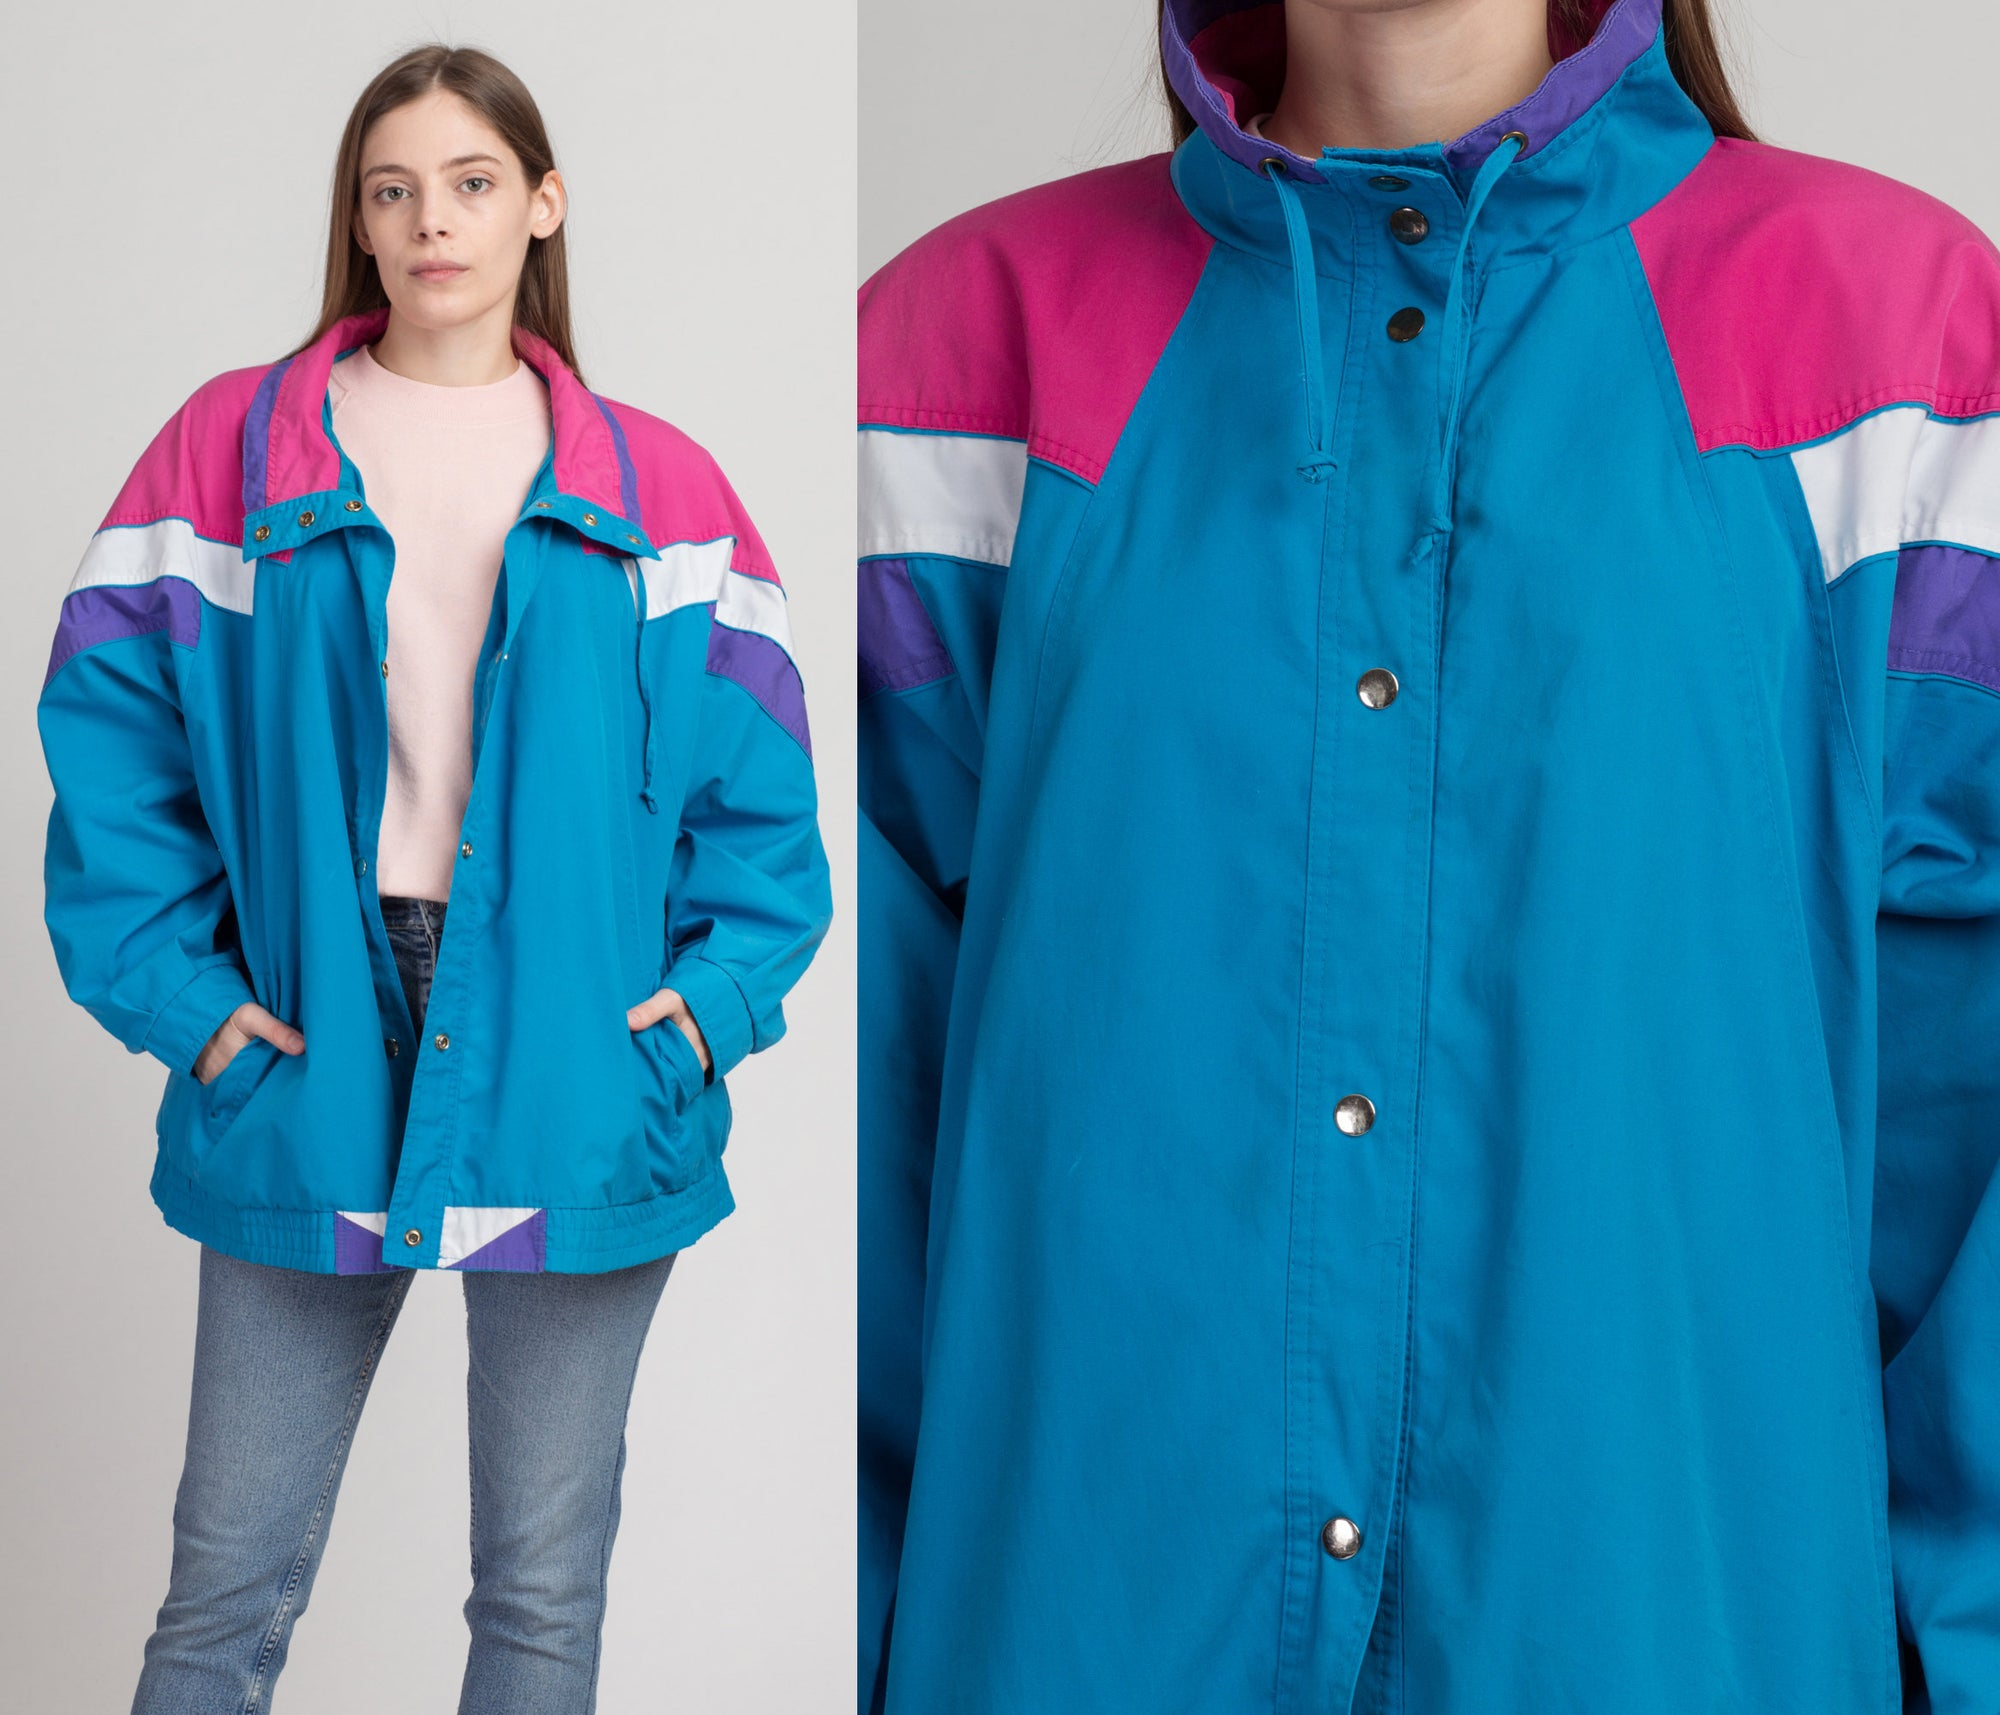 80s Current Seen Blue & Pink Color Block Jacket - 3X | Vintage Cotton Lightweight Streetwear Coat